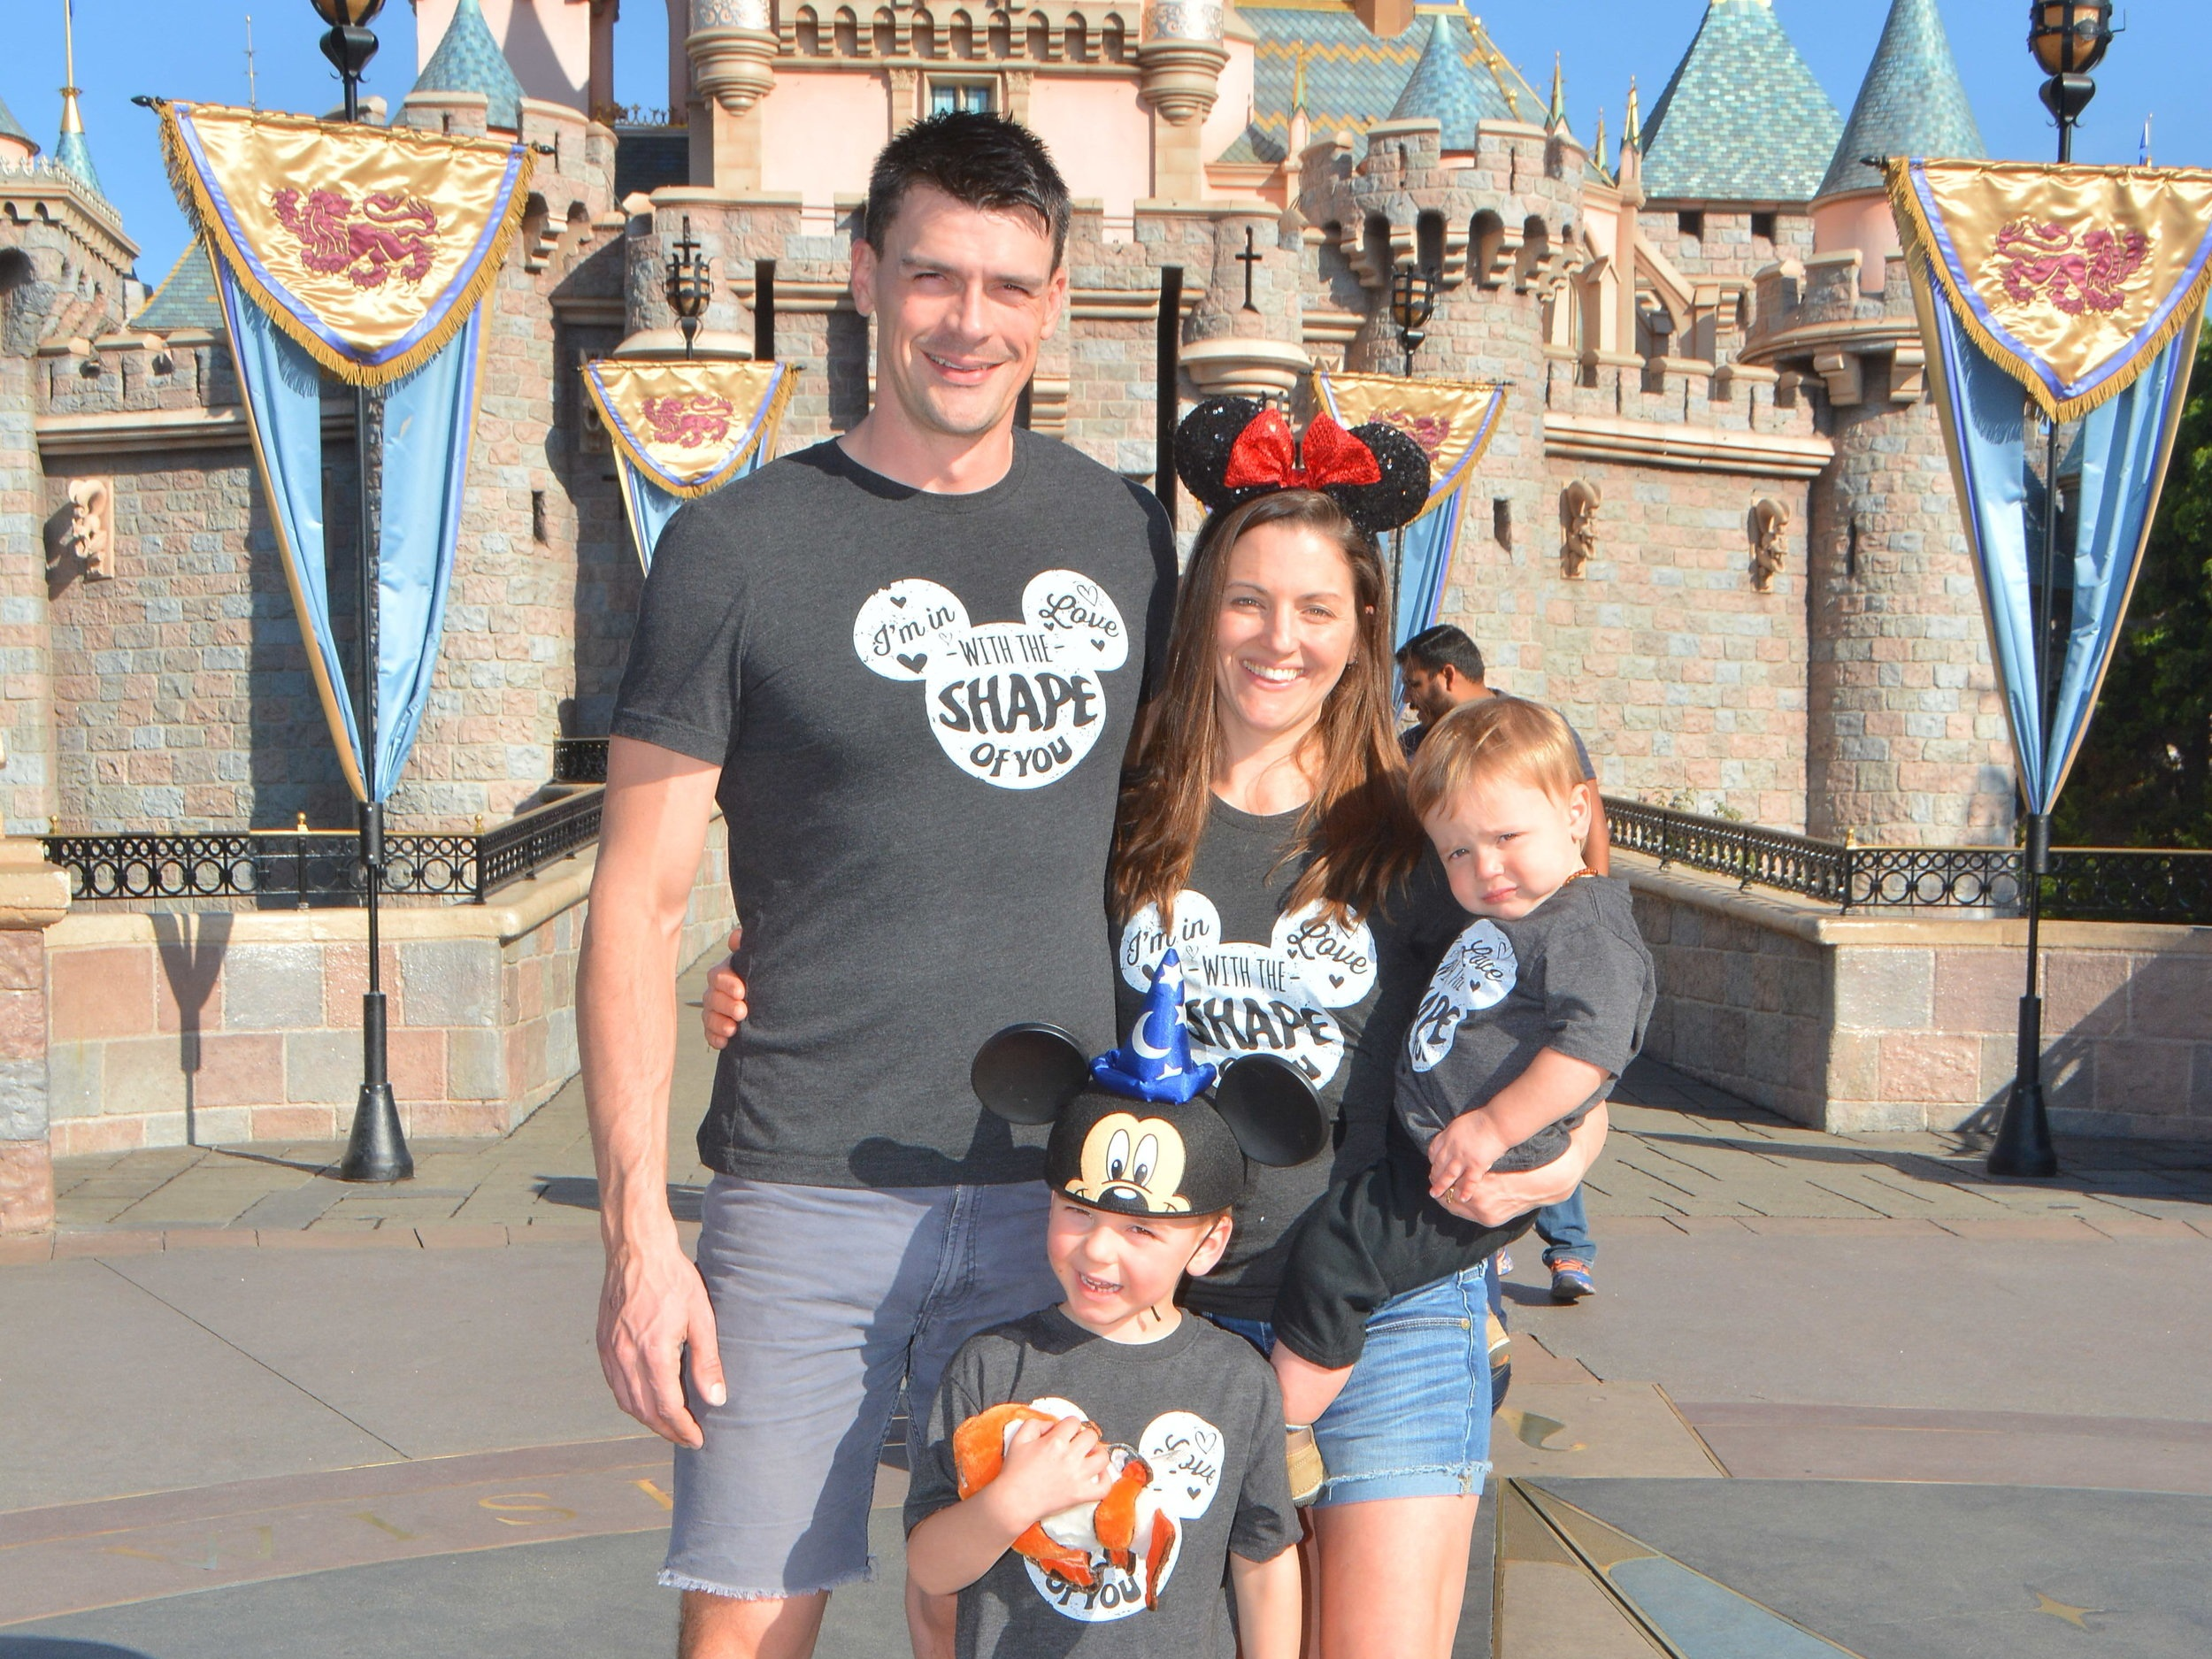 11 Reasons You NEED to Go to Disneyland If You've Only Ever Been to Disney World - POPSUGAR